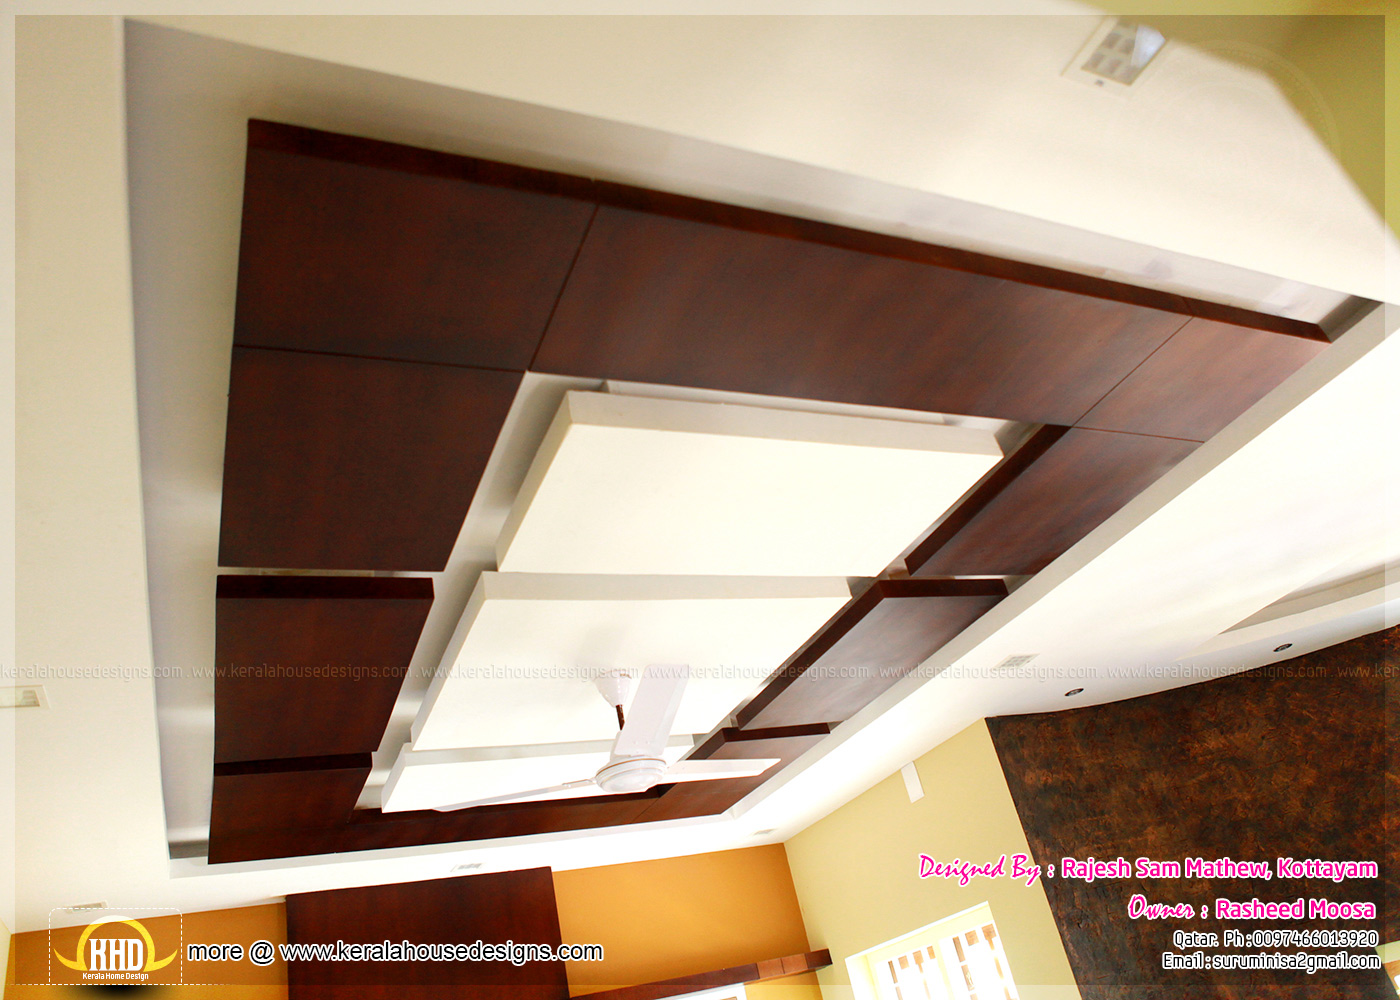 Kerala interior design with photos kerala home design for Interior house design ceiling